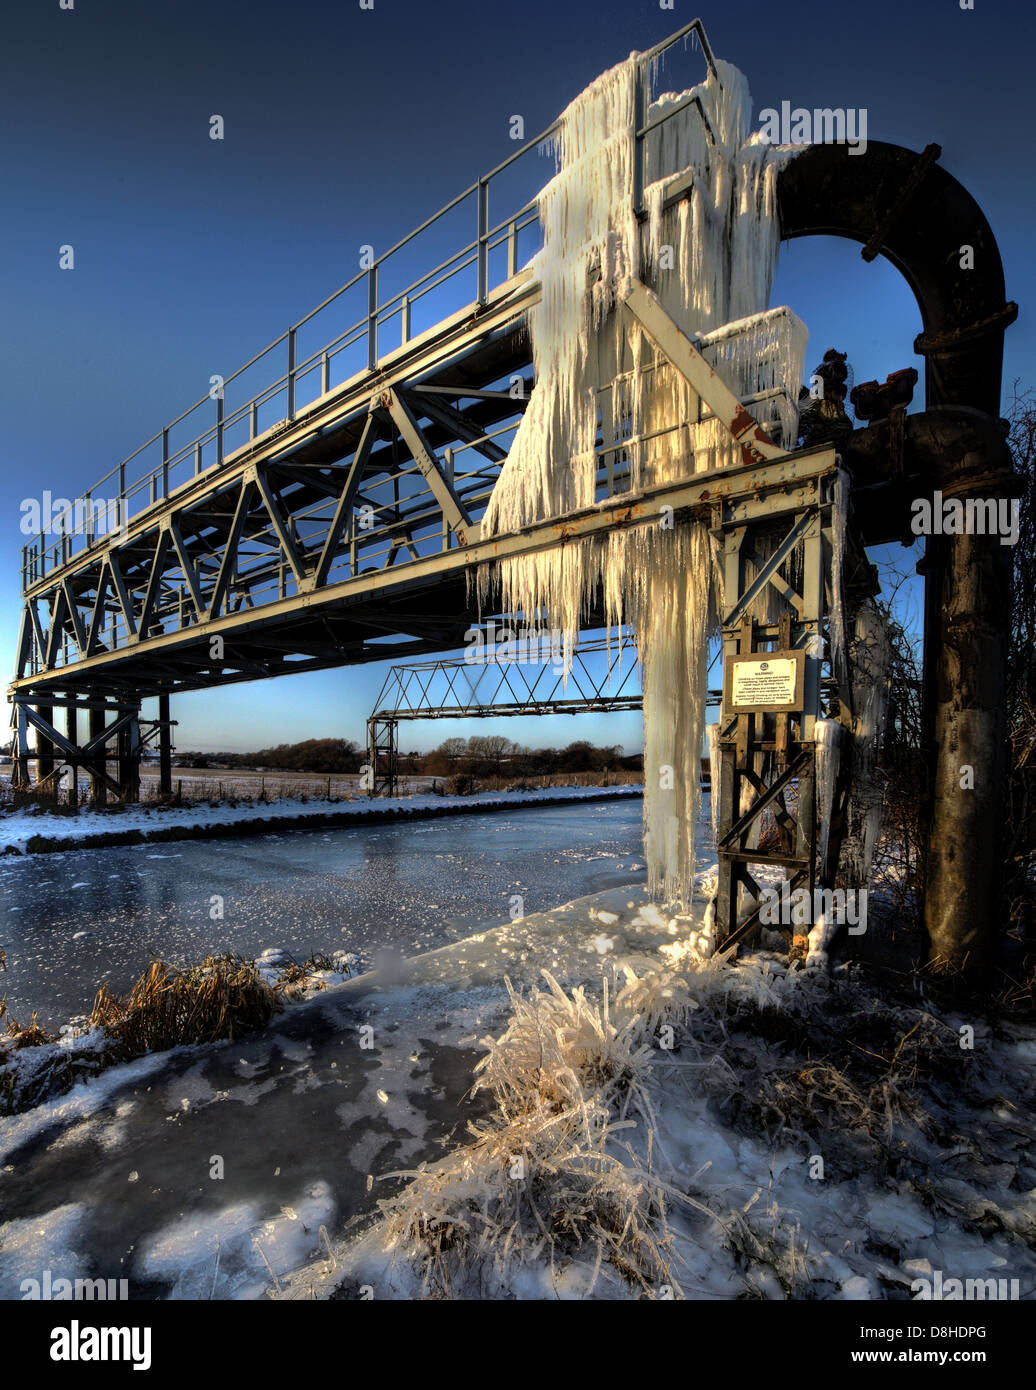 Extreme cold weather and icicles on pipework over the Trent And Mersey Canal, Rudheath, Northwich, Cheshire, England - Stock Image